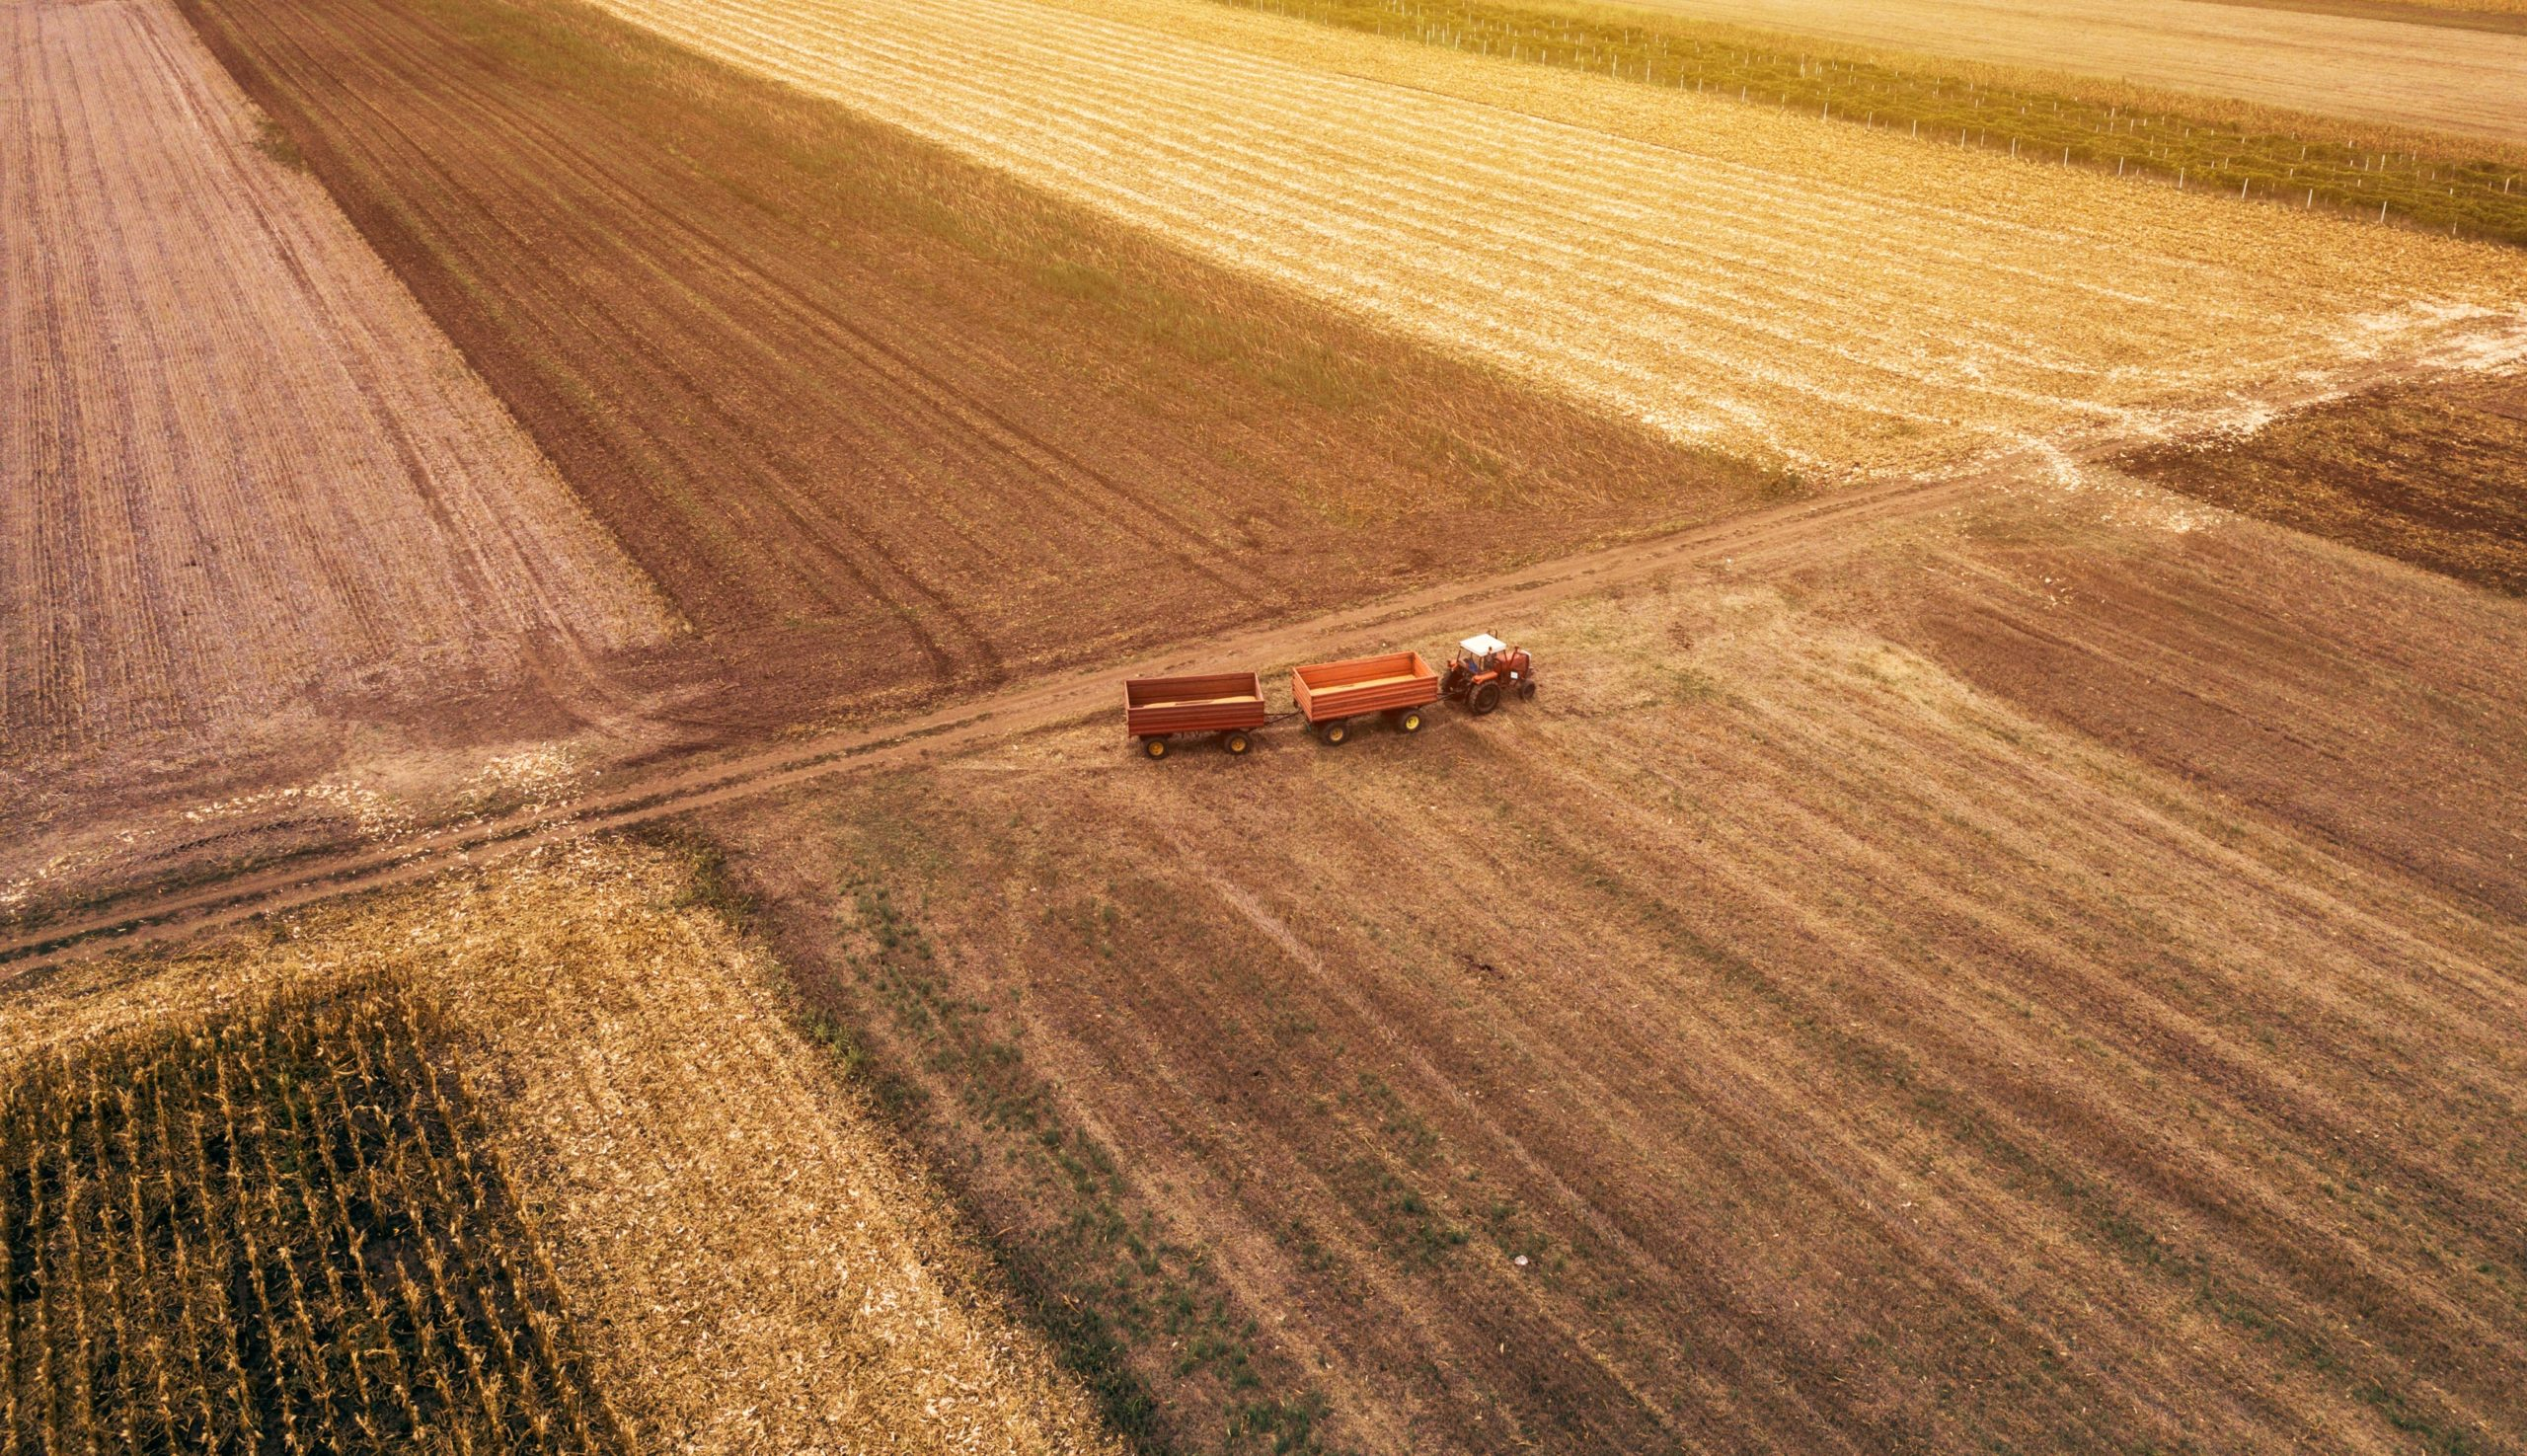 aerial-view-of-agricultural-tractor-in-the-field-PQ92XKR-min